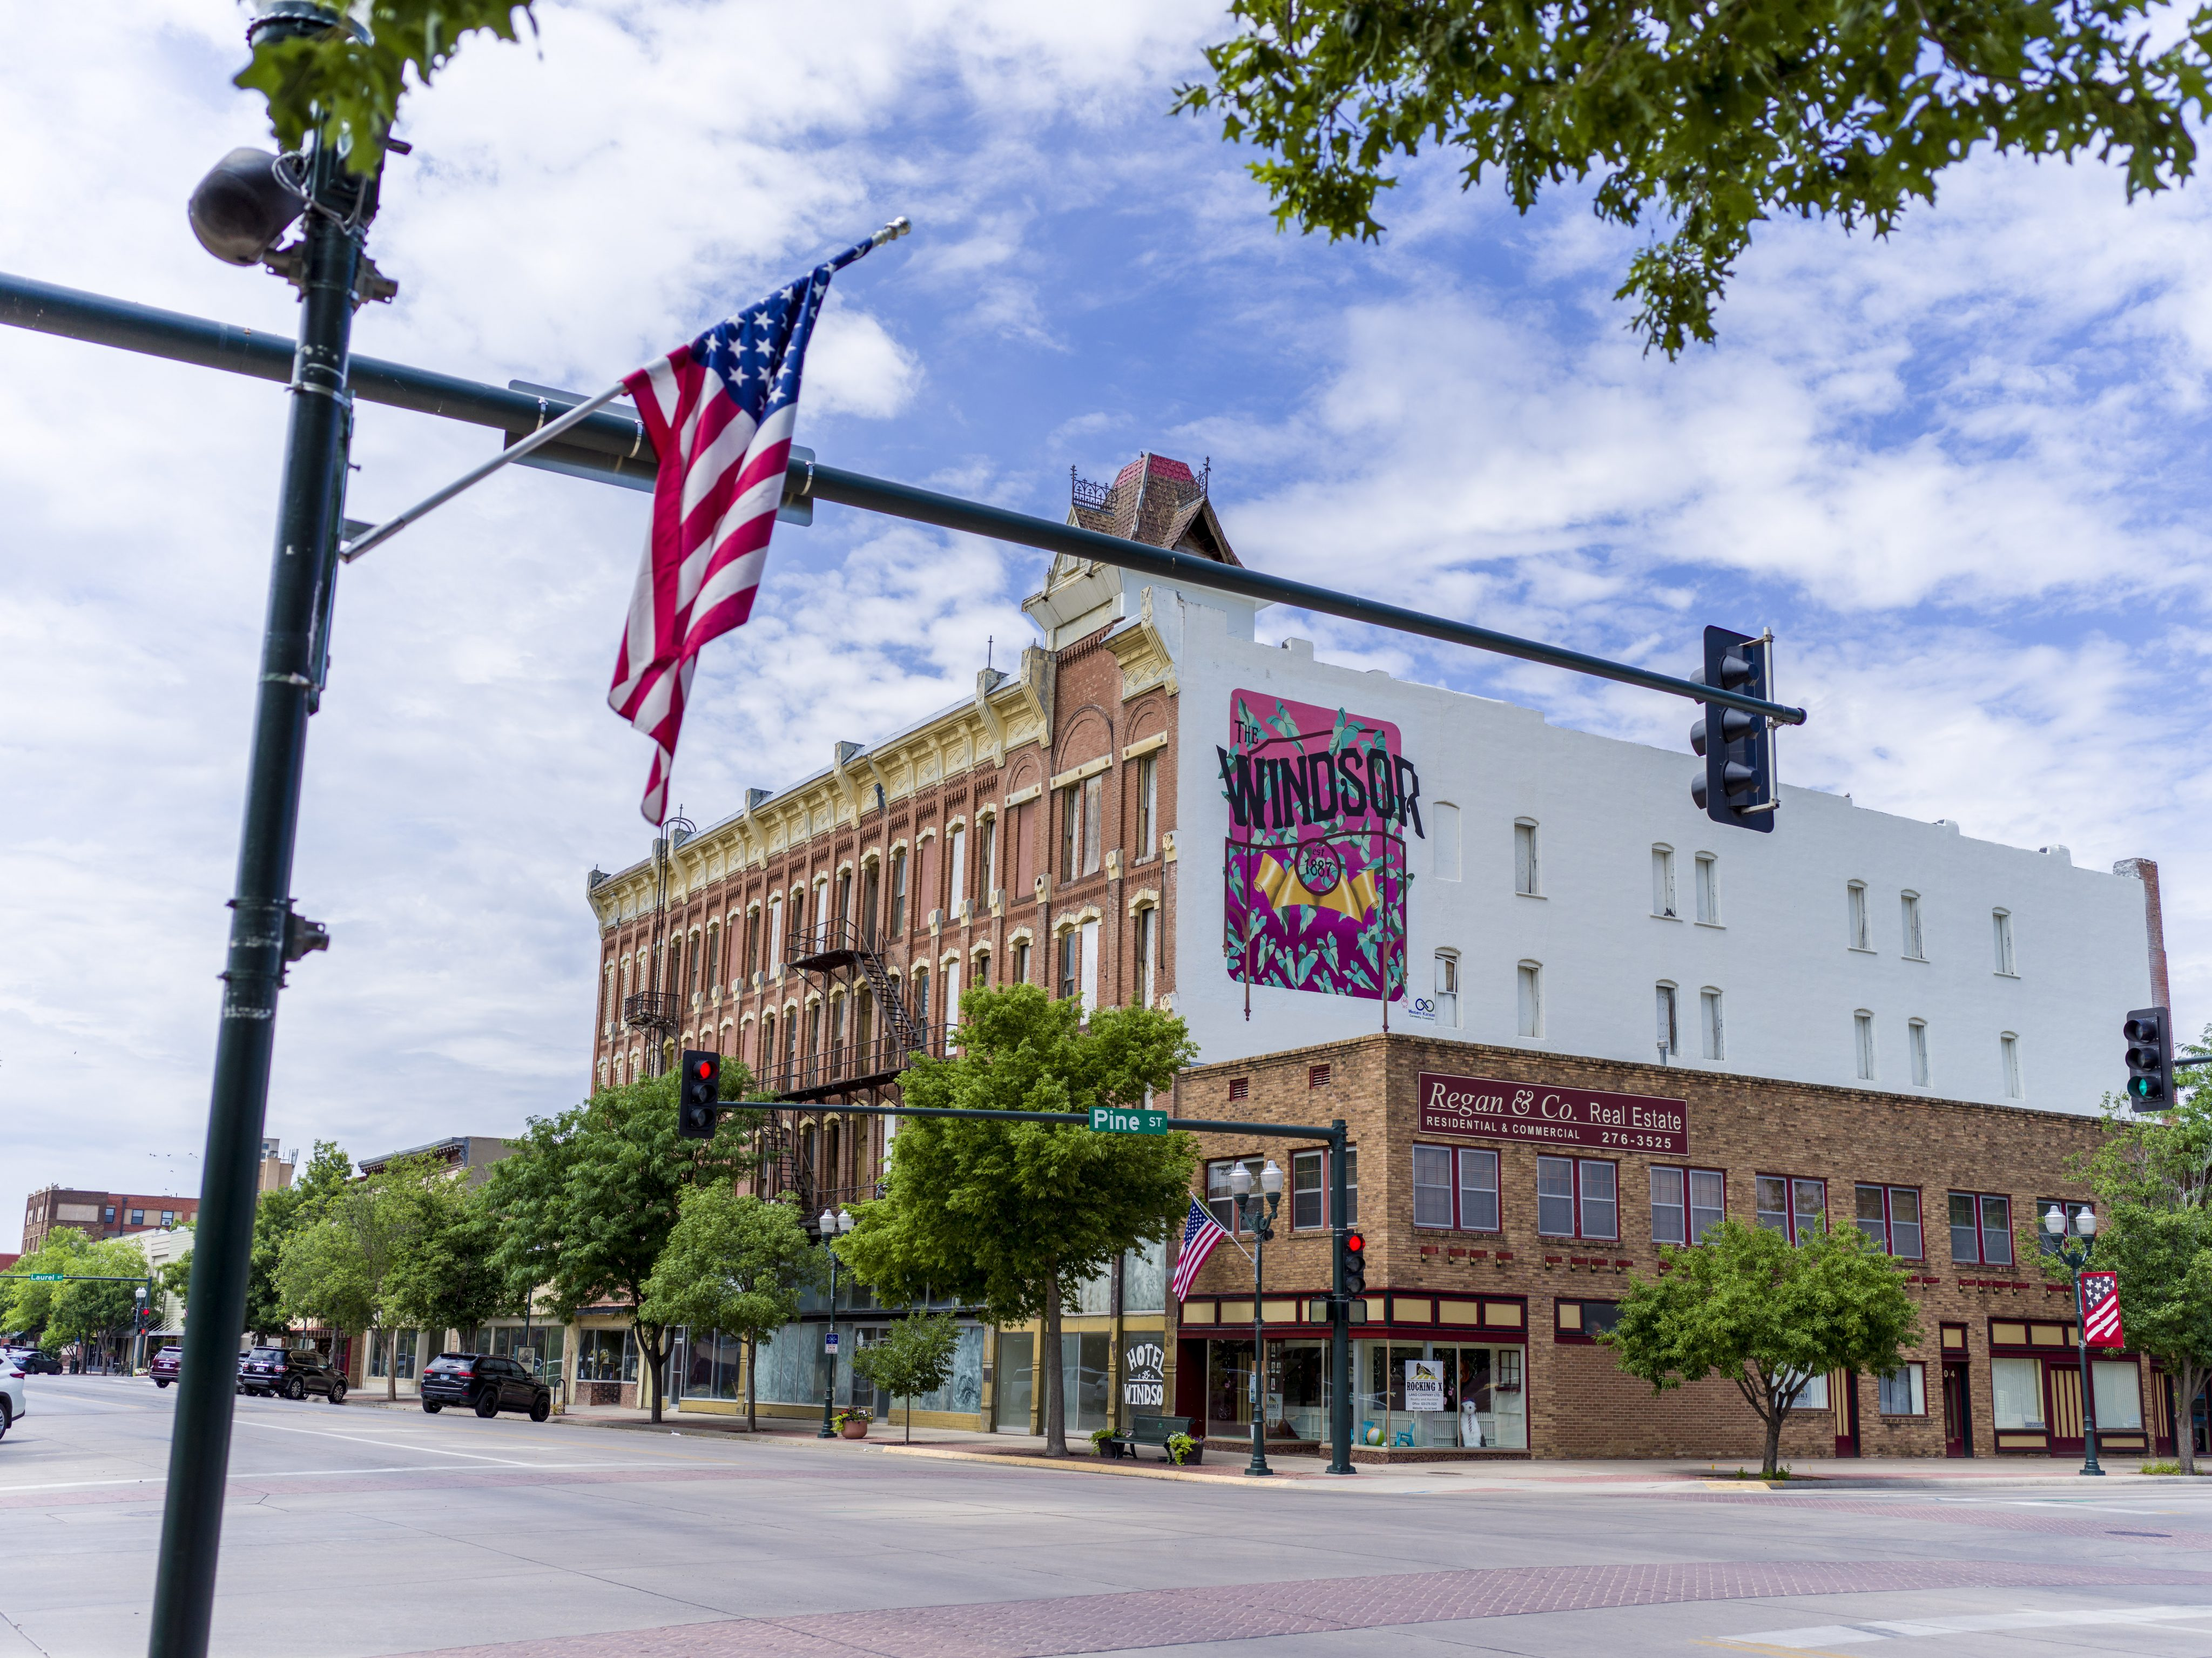 Historic Windsor Hotel located in Garden City, Kansas with blue sky and American flag